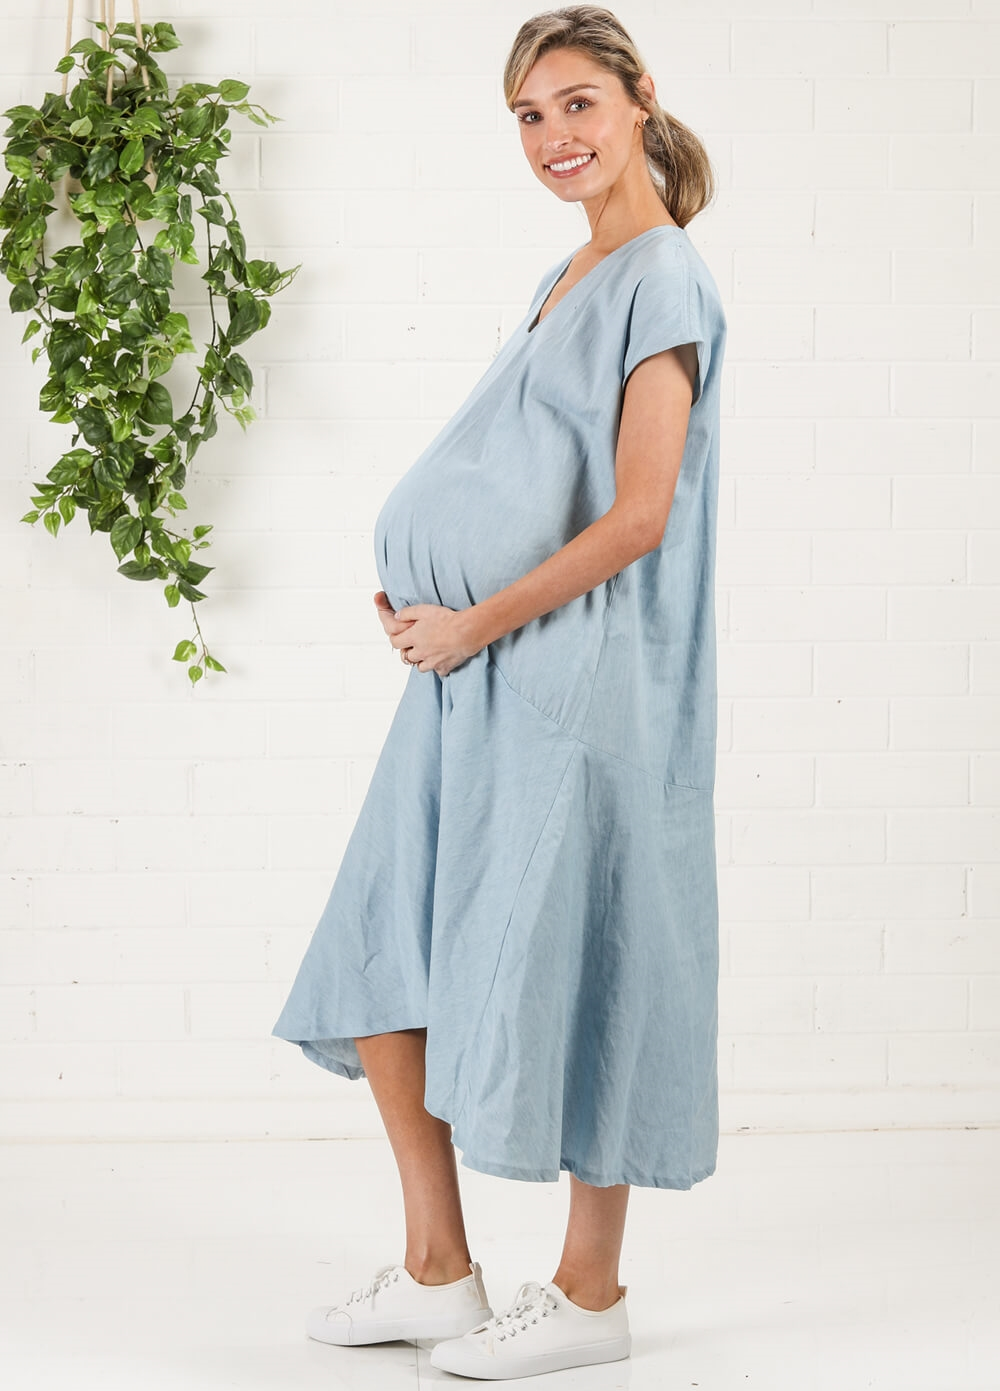 Imanimo - Agathe Babymoon Maternity Dress in Chambray | Queen Bee